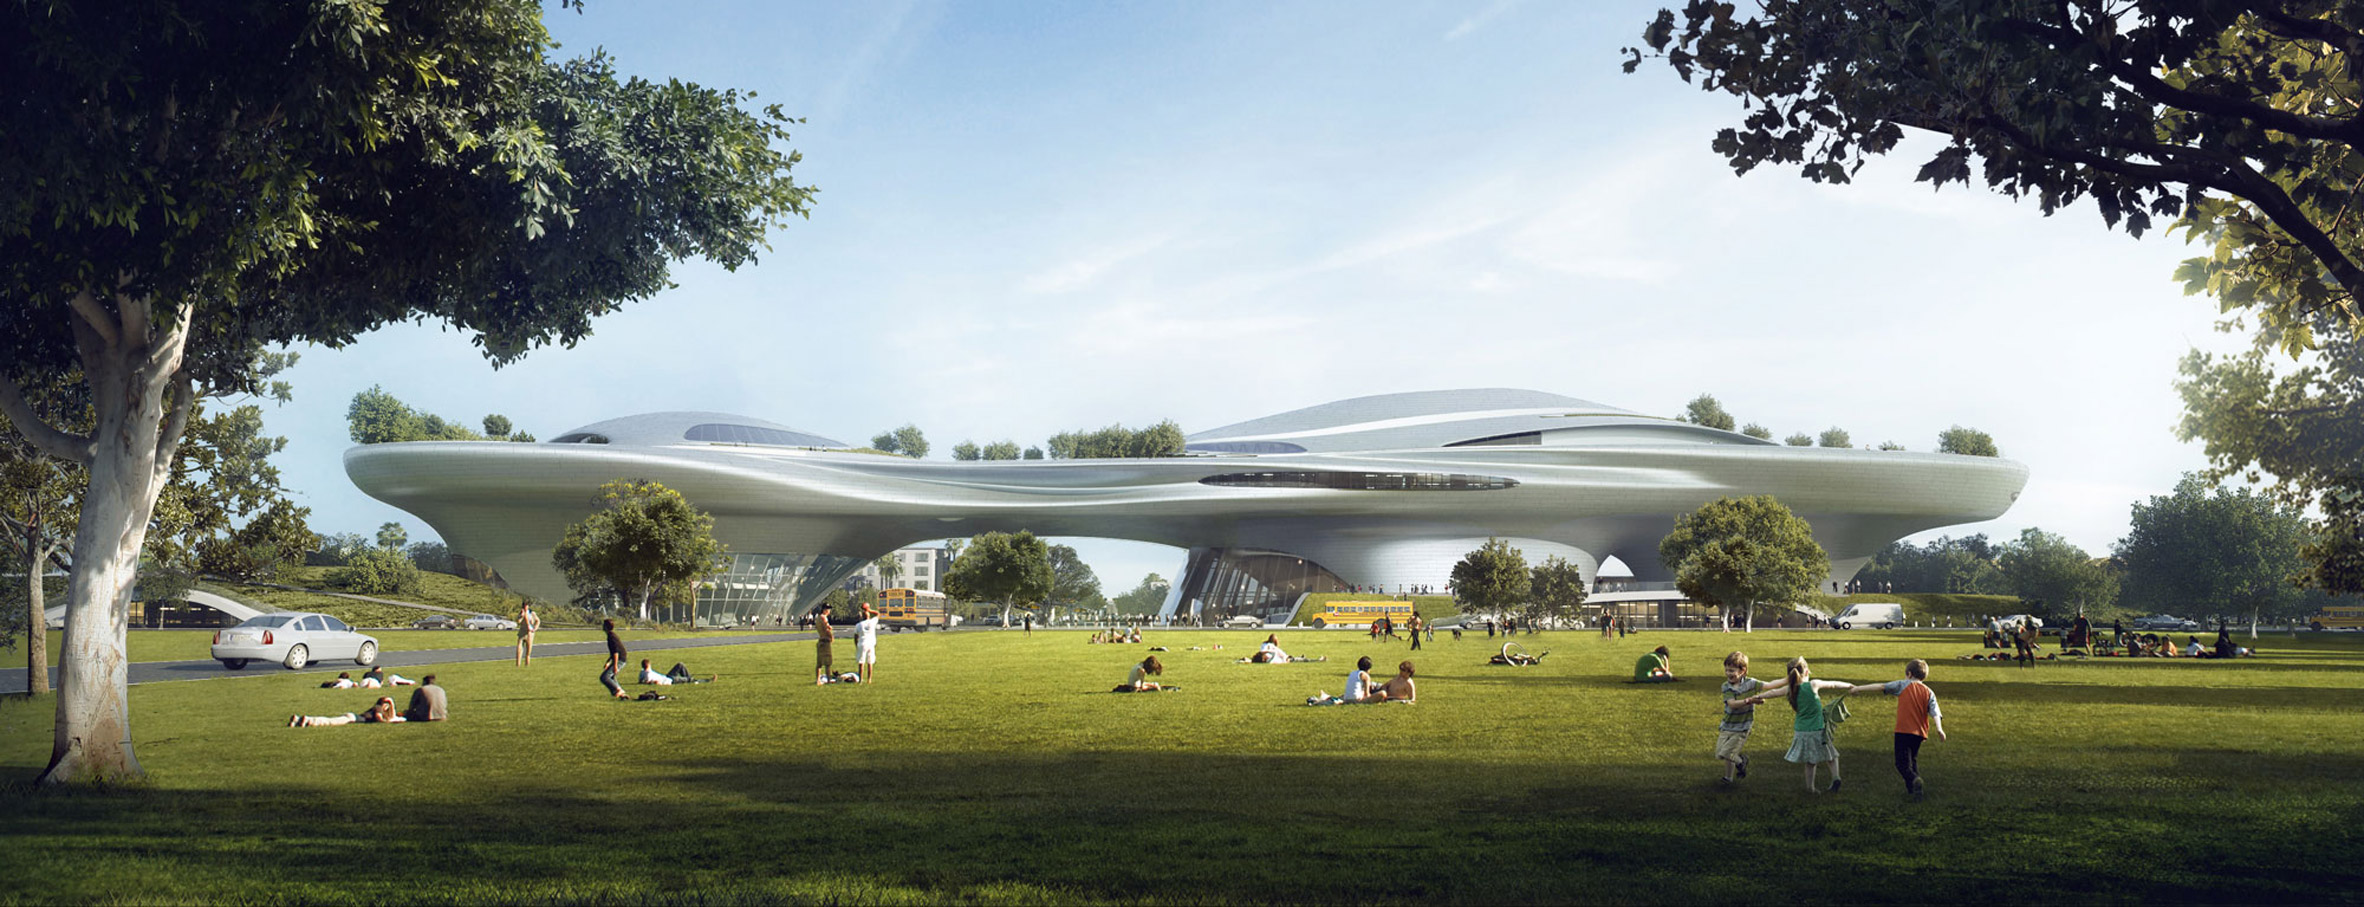 MAD's George Lucas Museum will be built in Los Angeles